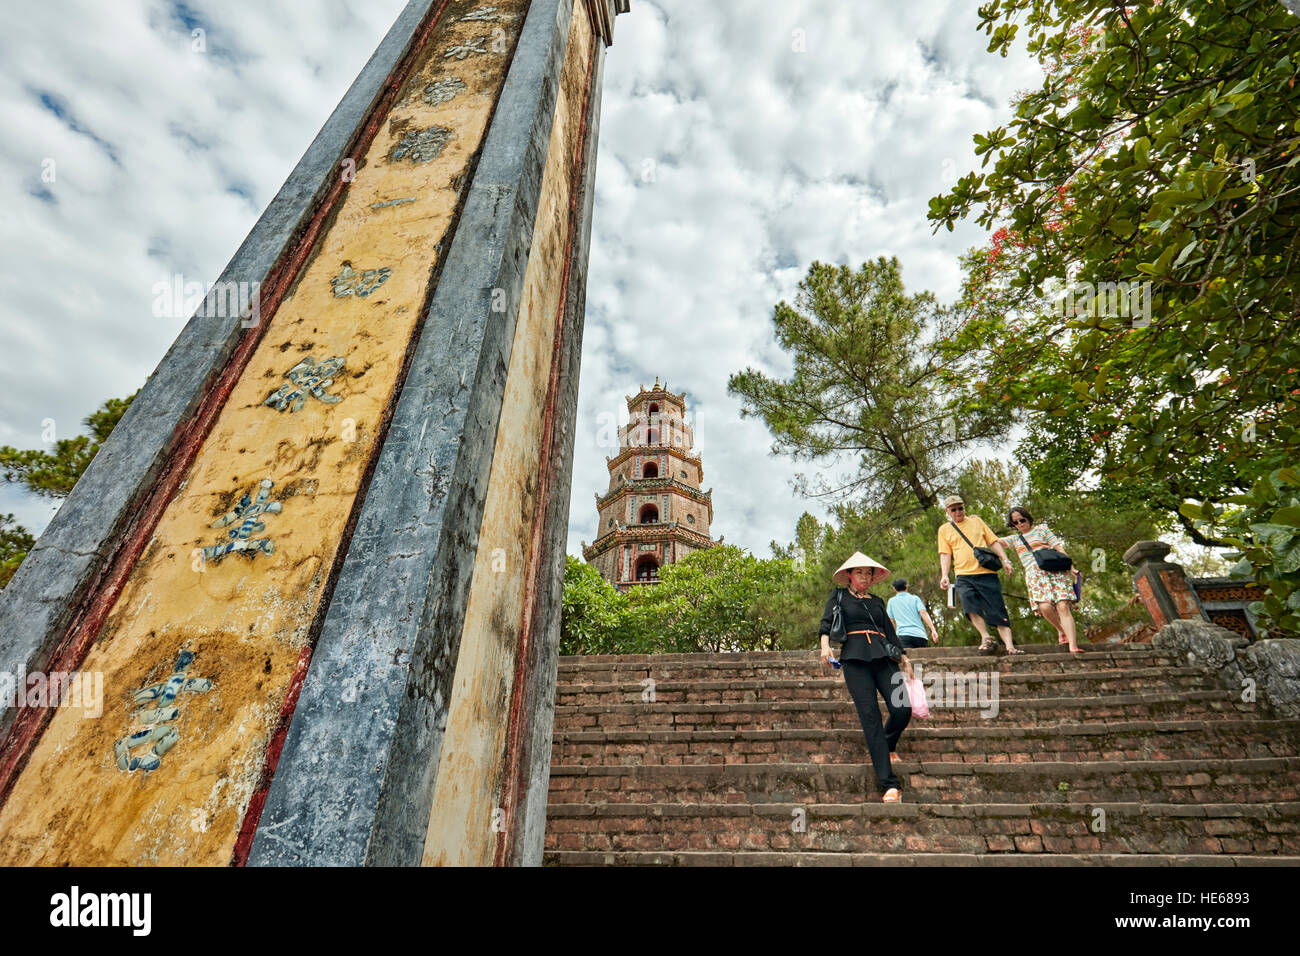 The front entrance of the Thien Mu Pagoda. Hue, Vietnam. - Stock Image